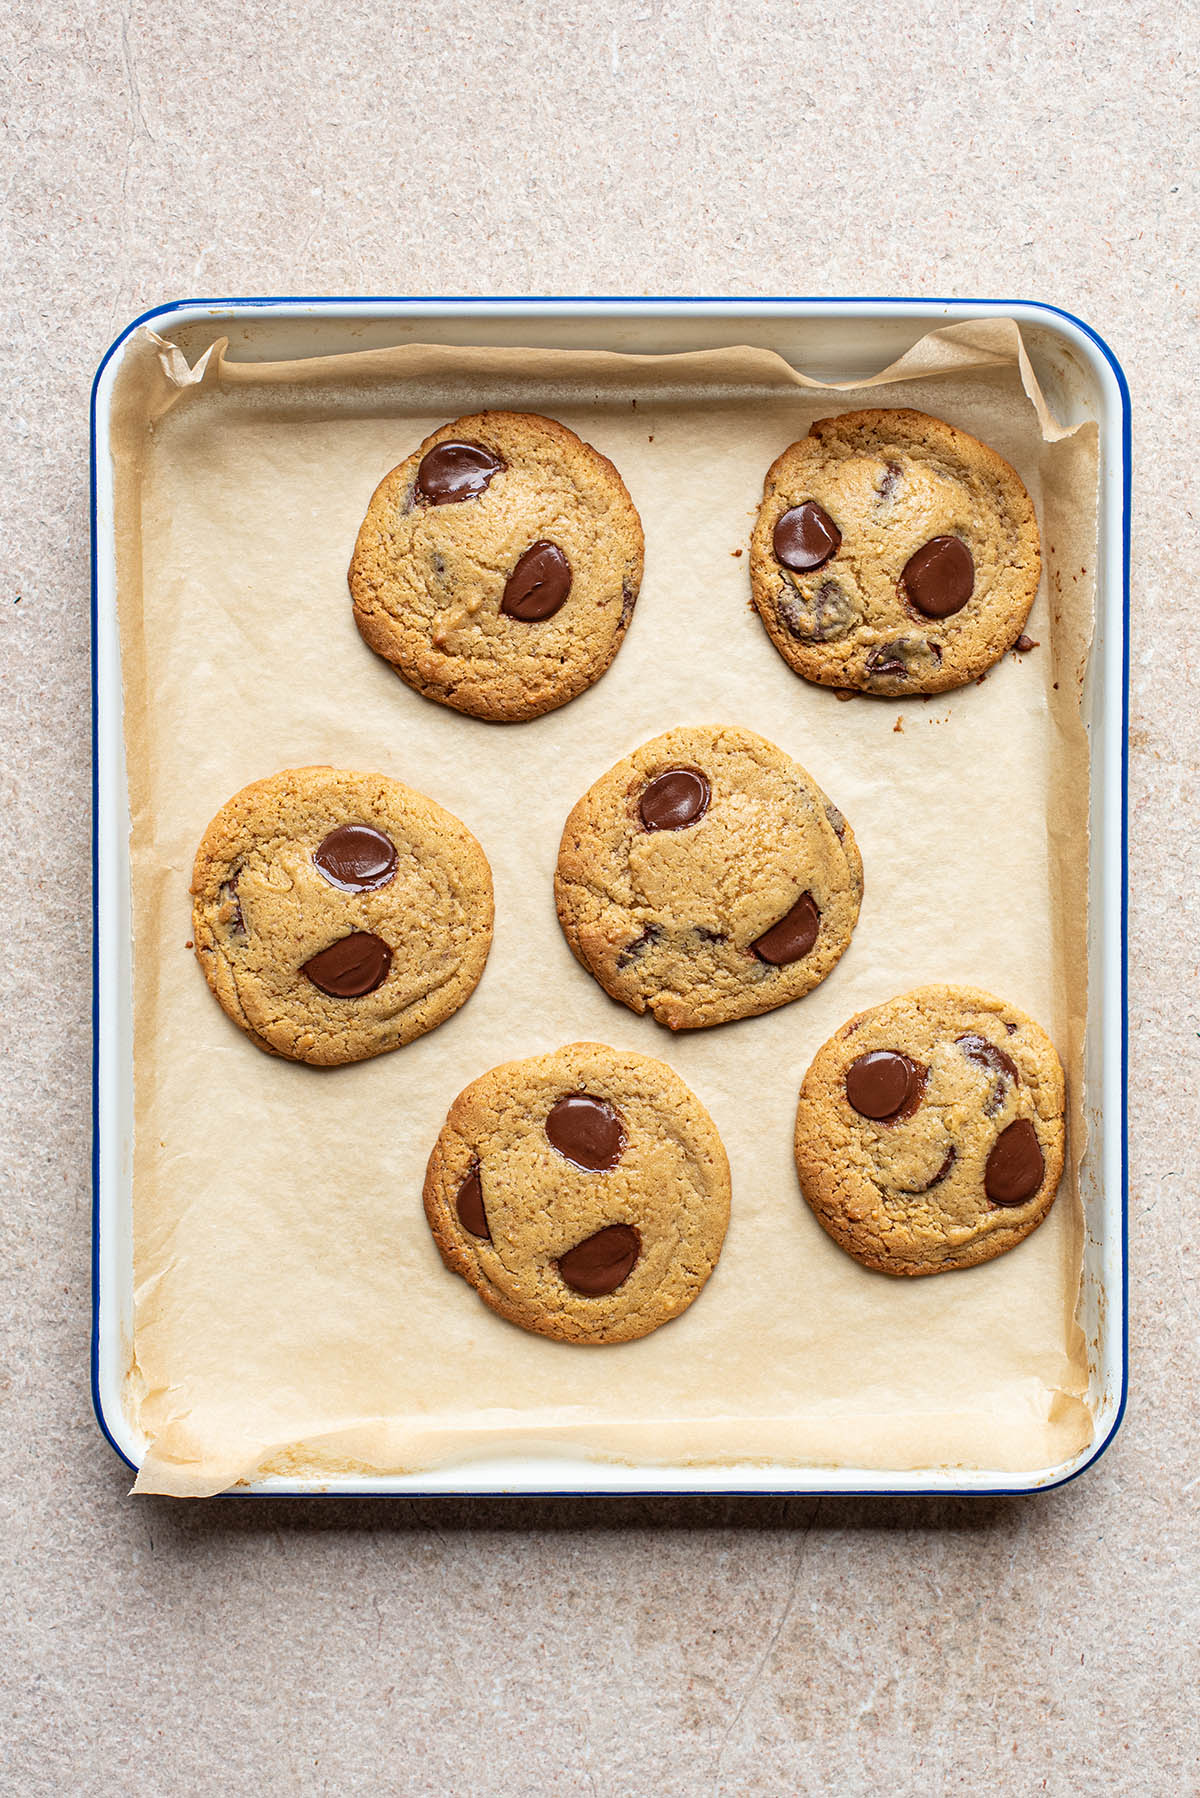 Six small batch chocolate chip cookies on a parchment paper-lined baking sheet.